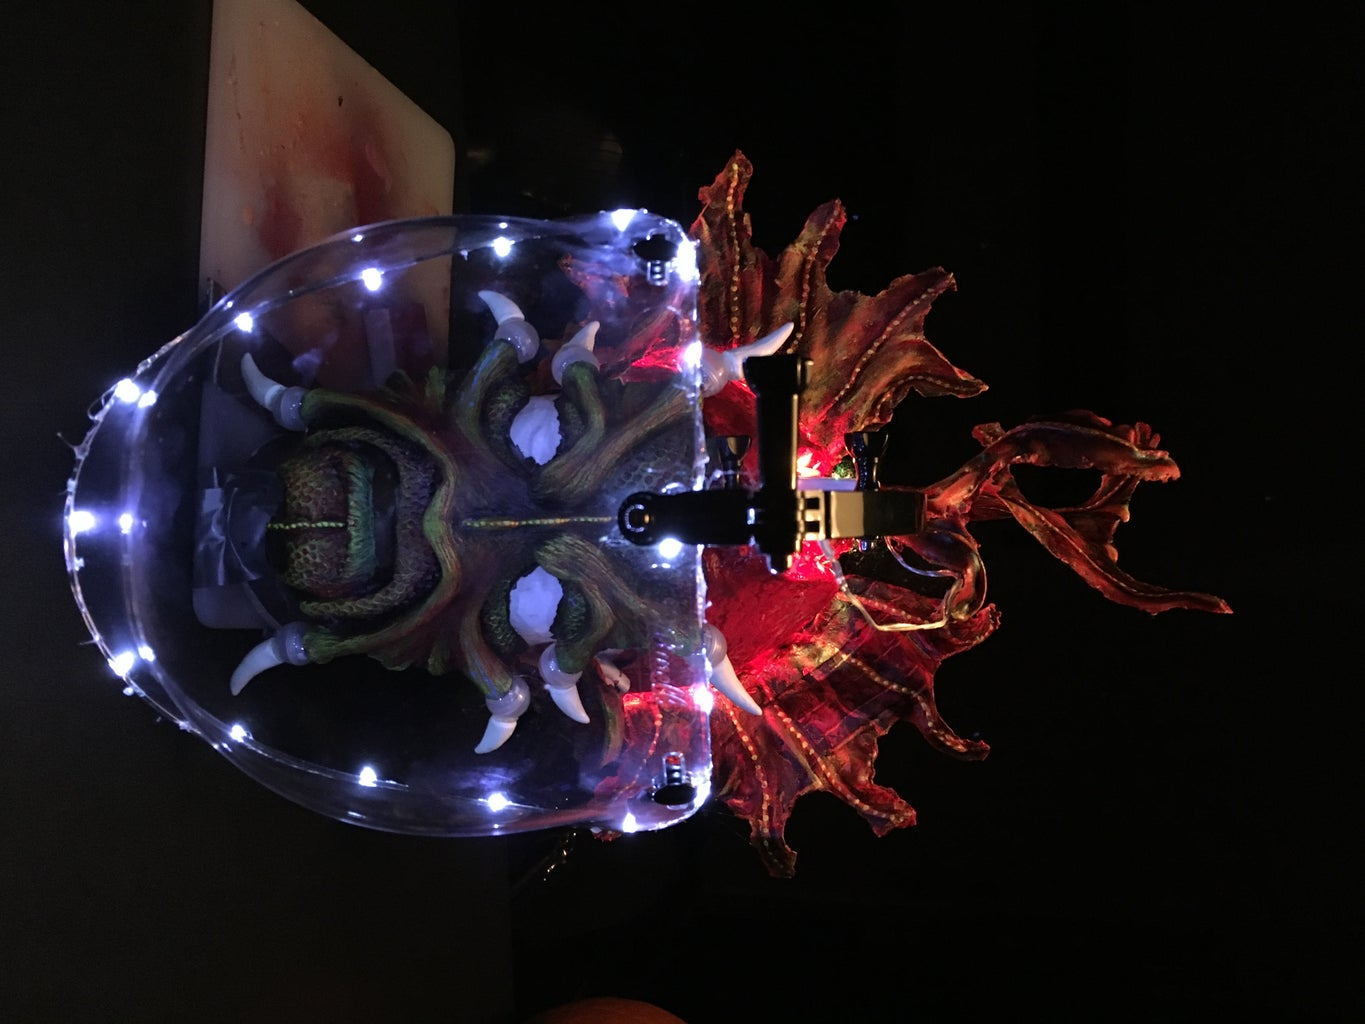 THE LED HEAD, HAIR, GAUNTLET FINS, AND PIECING TOGETHER